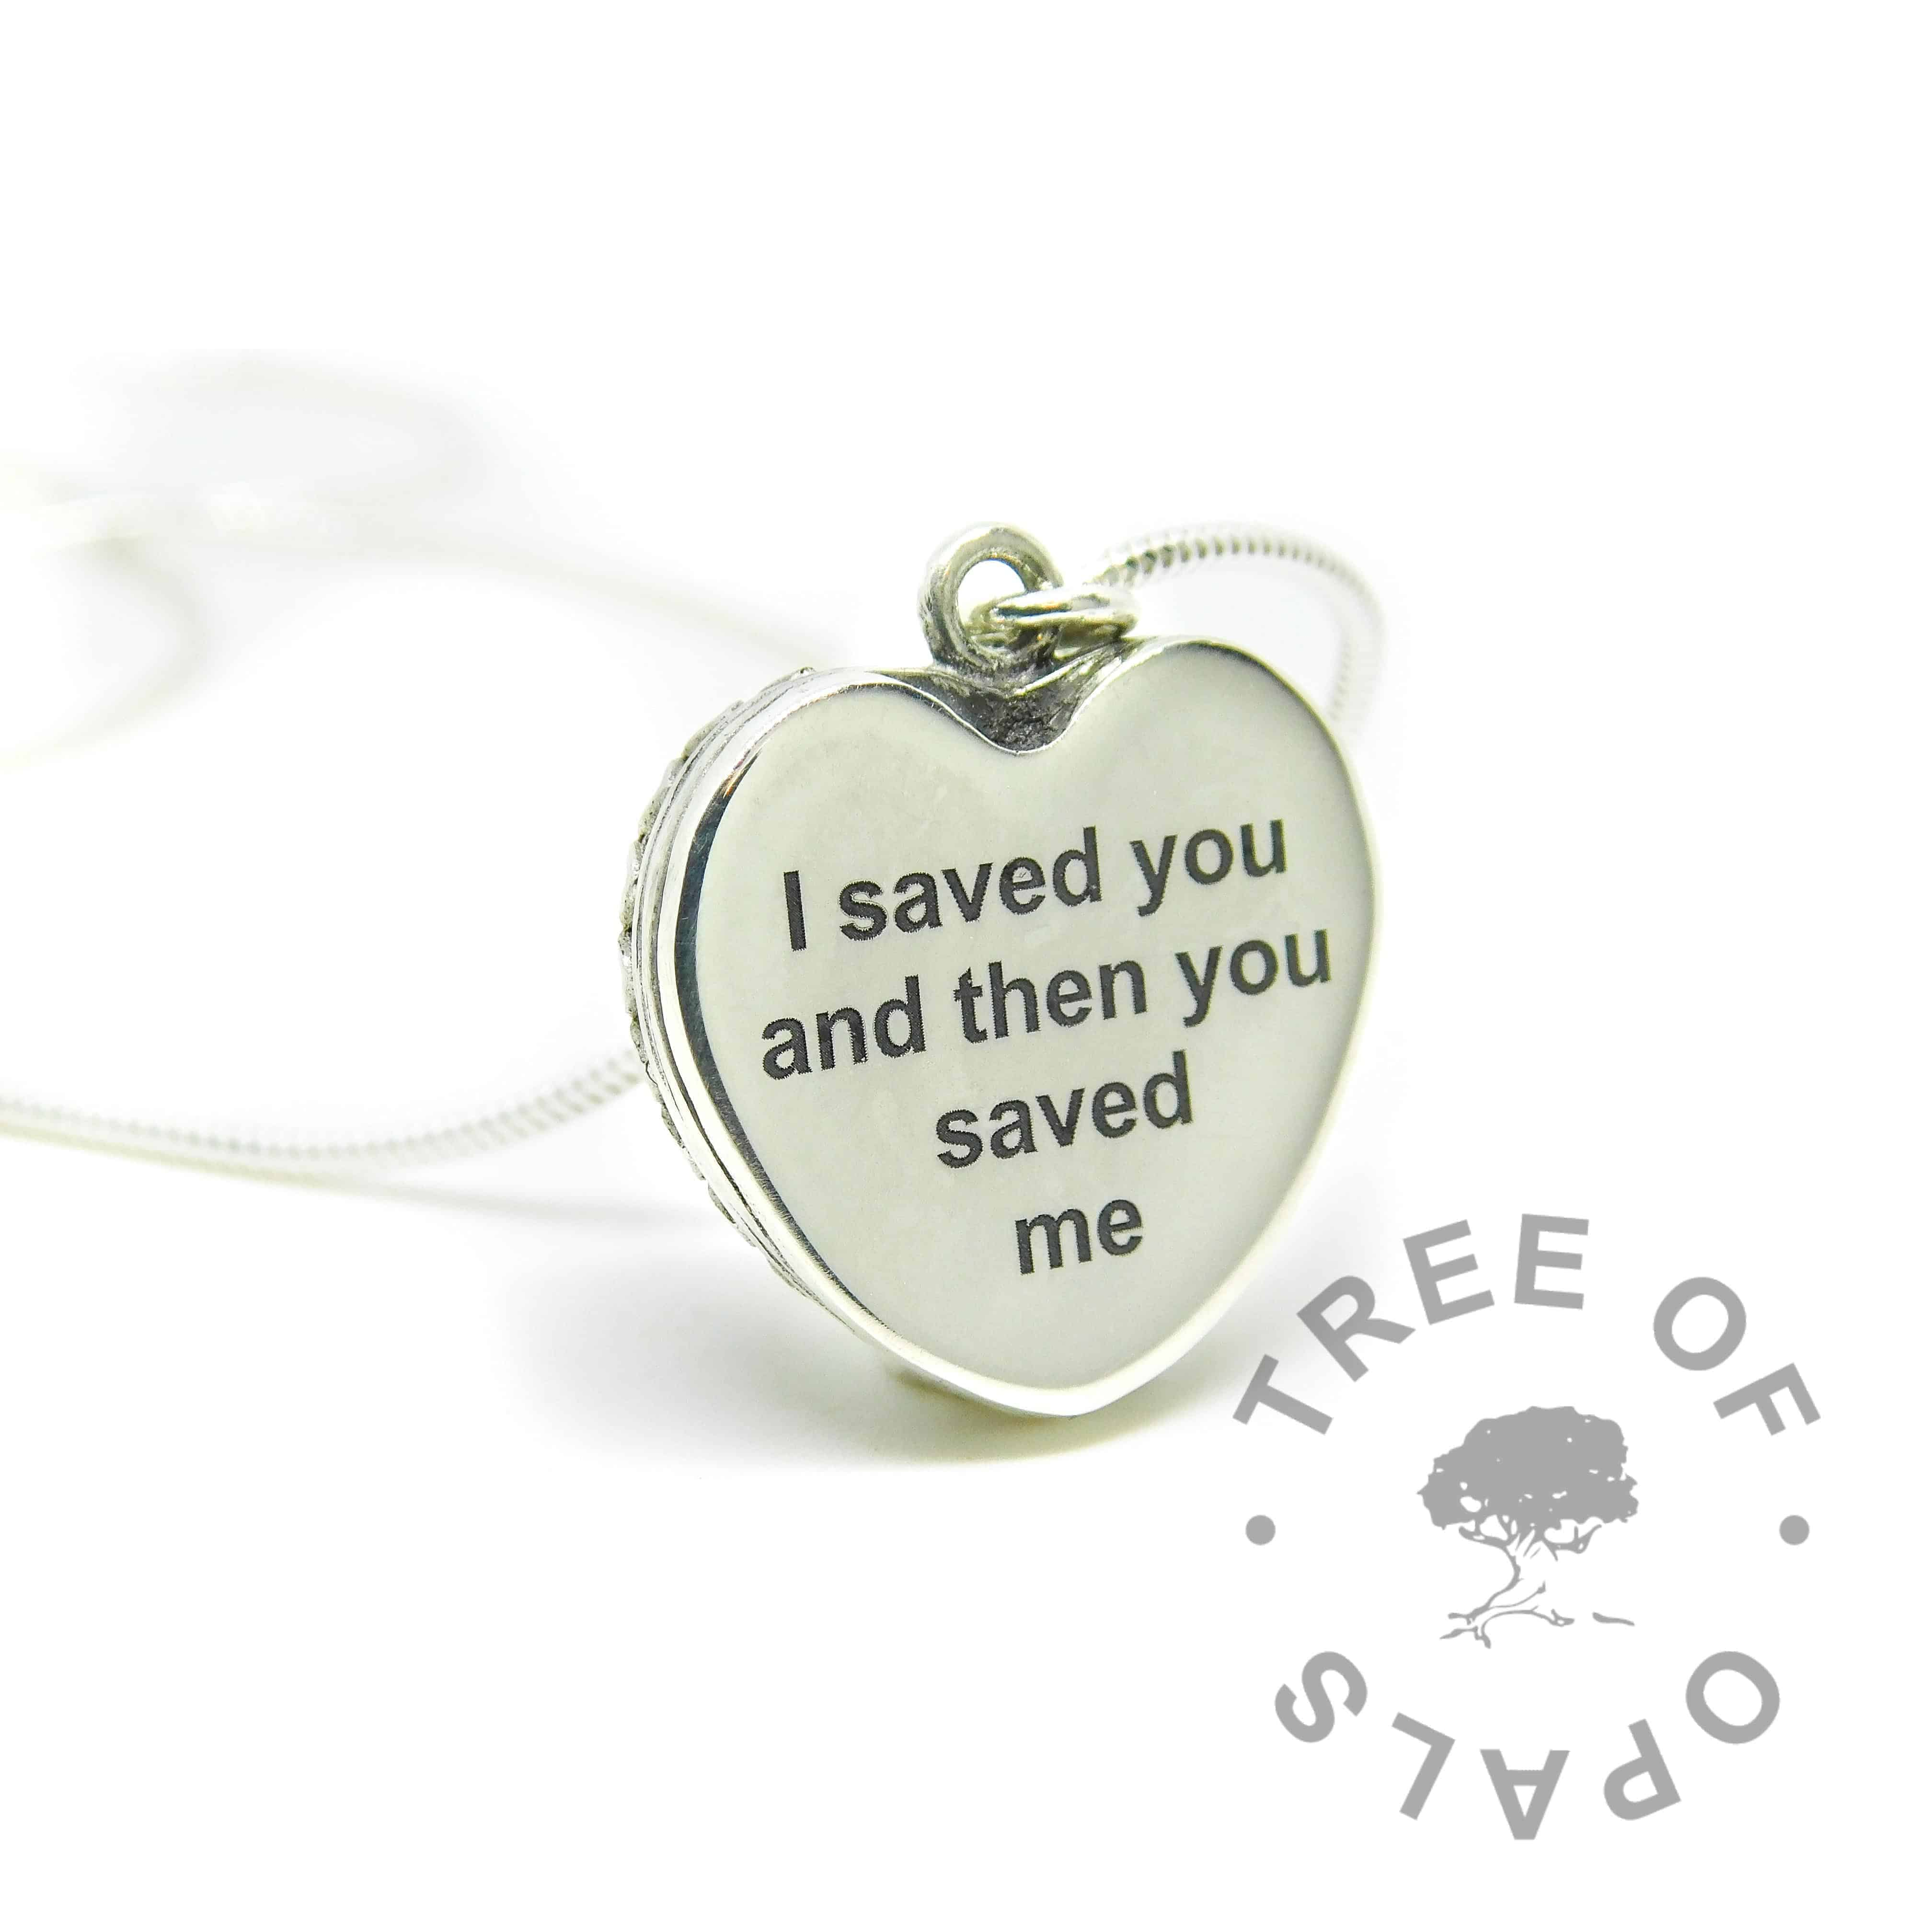 Arial font engraved memorial heart necklace (back). 20mm wide heart. Handmade with solid sterling EcoSilver. Watermarked copyright Tree of Opals memorial jewellery image